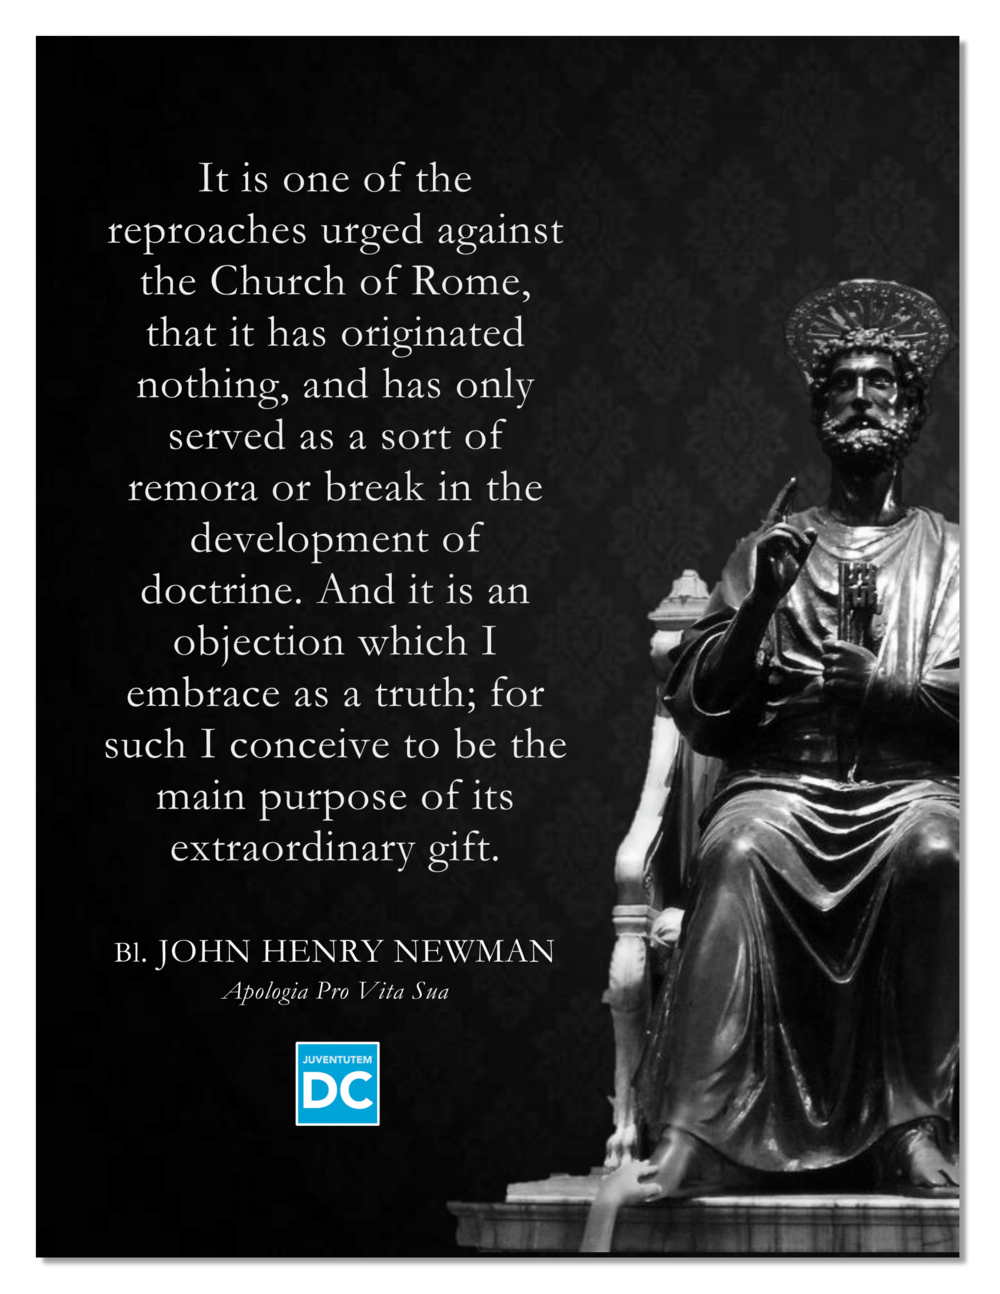 Newman on Papacy v2-1.png